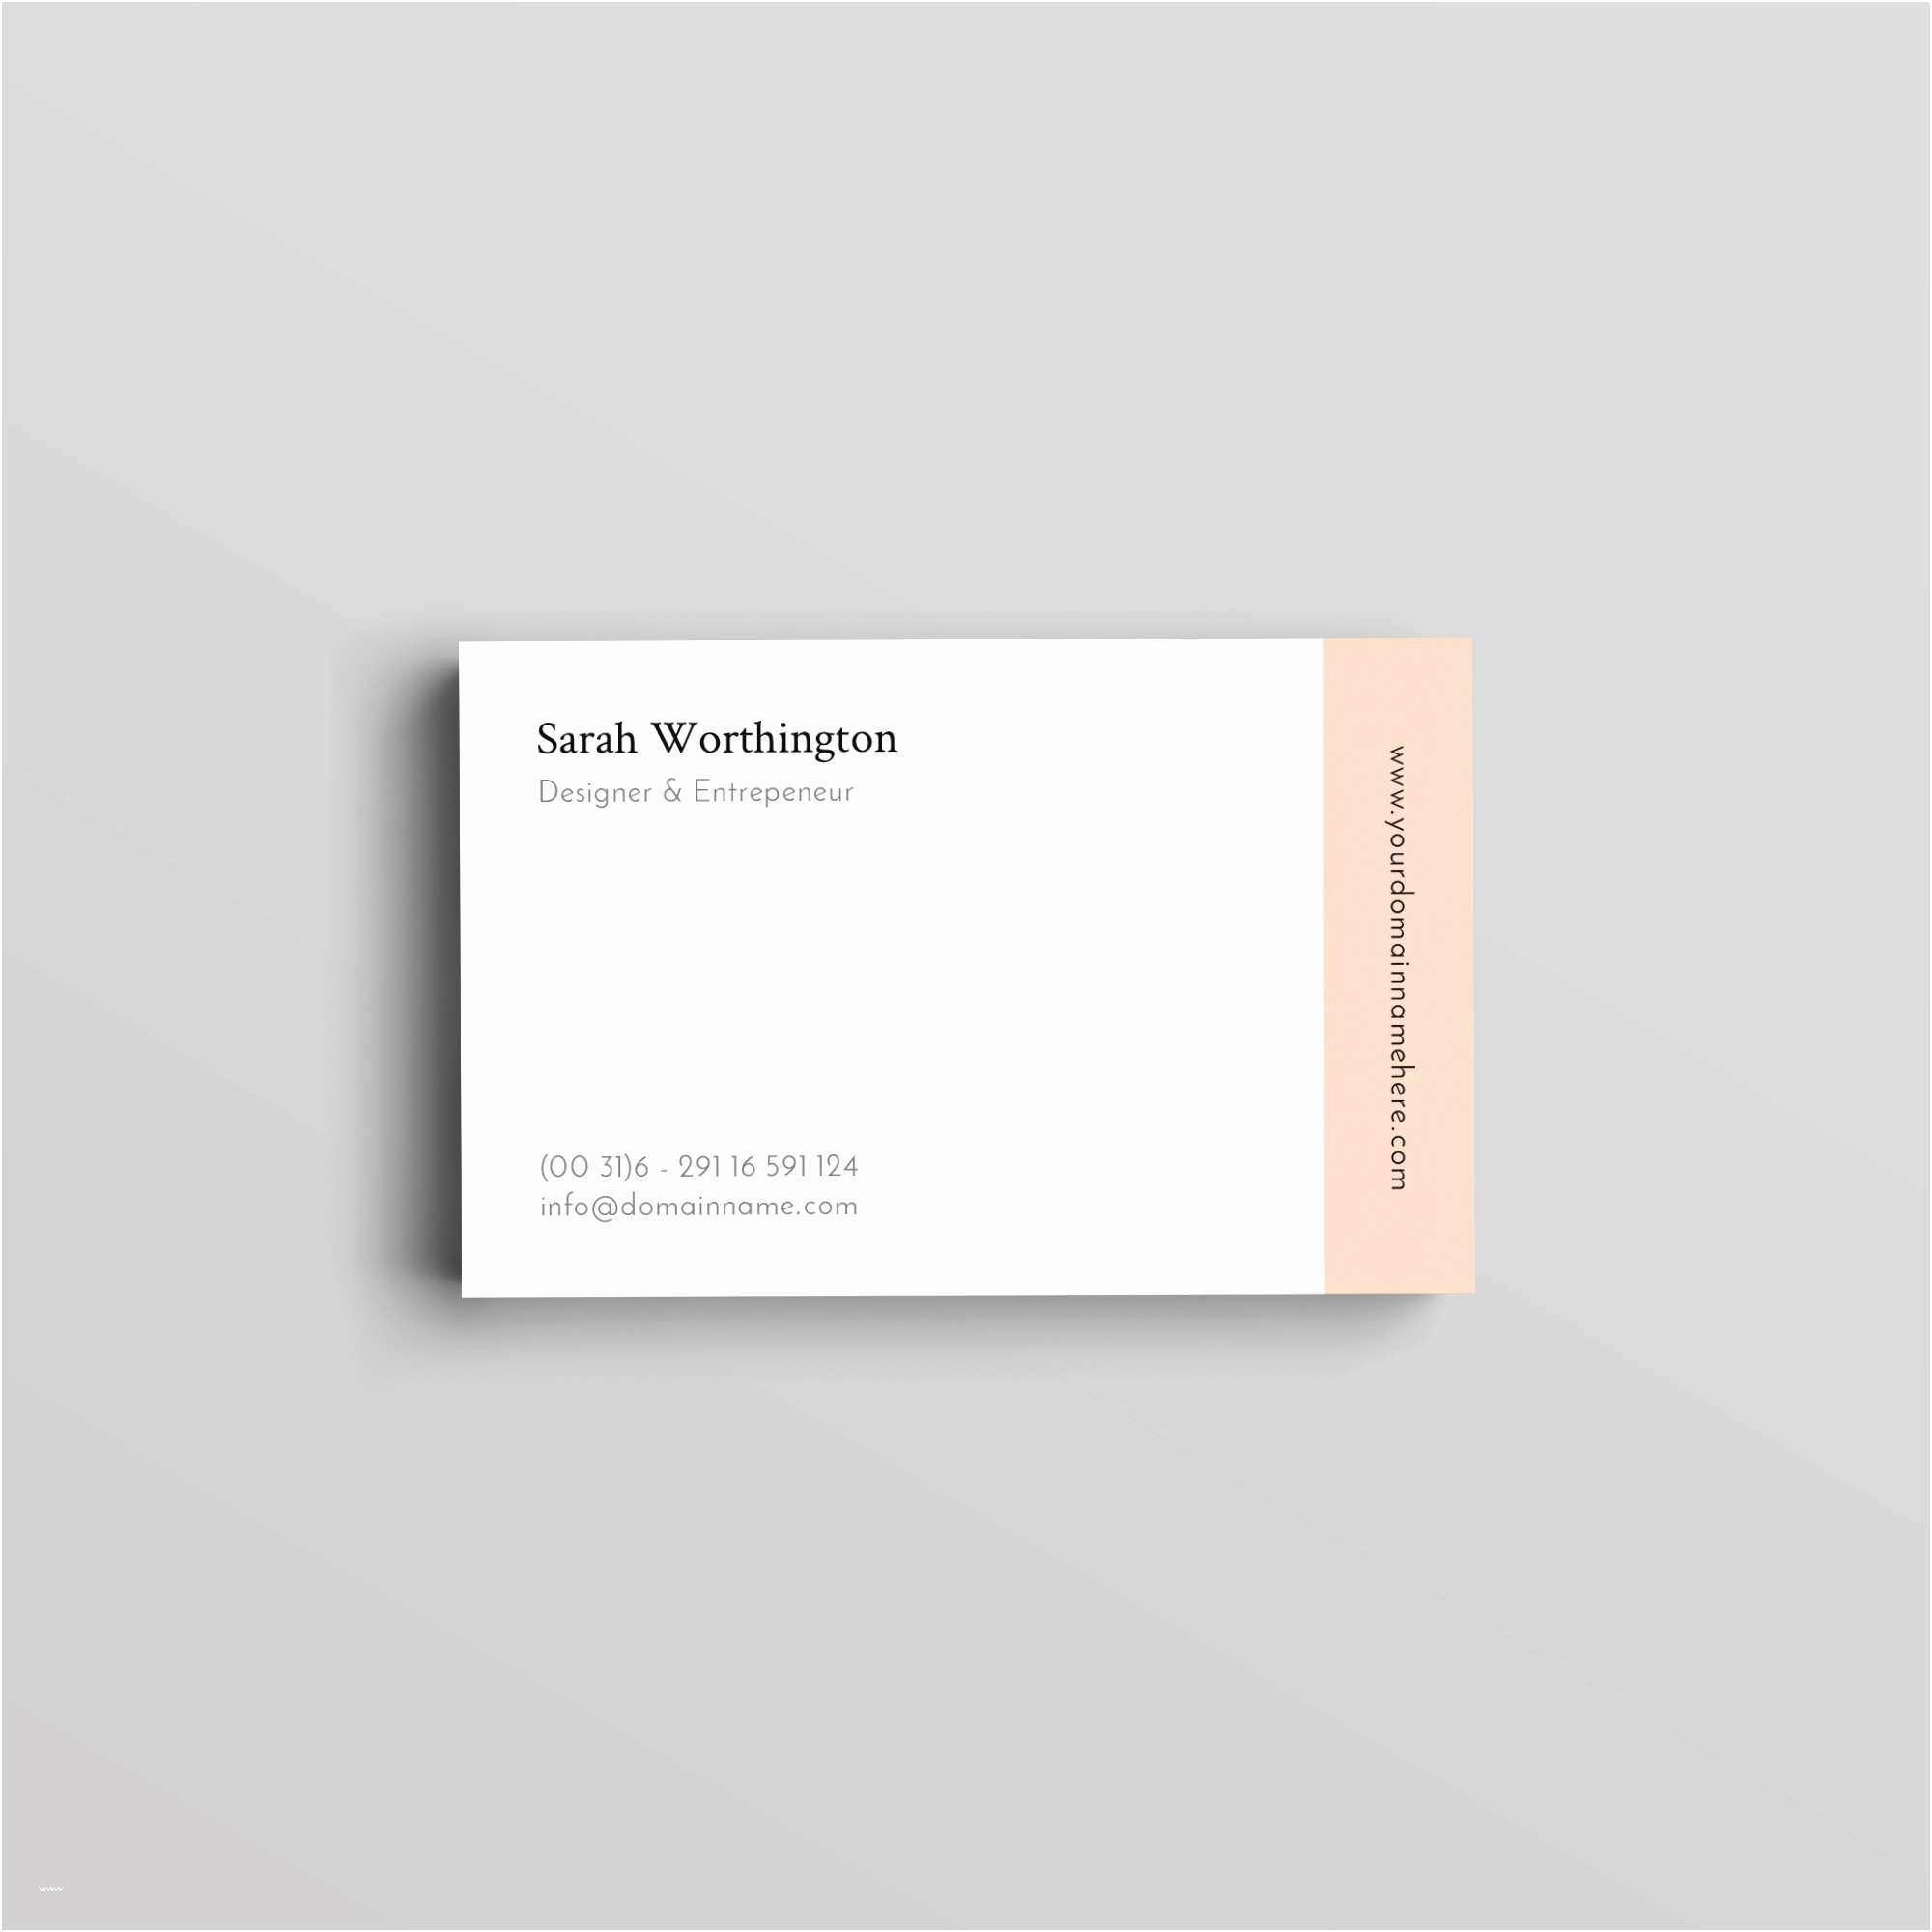 Avery 5871 Business Cards Template Beautiful Lovely Avery Business Card Template 8871